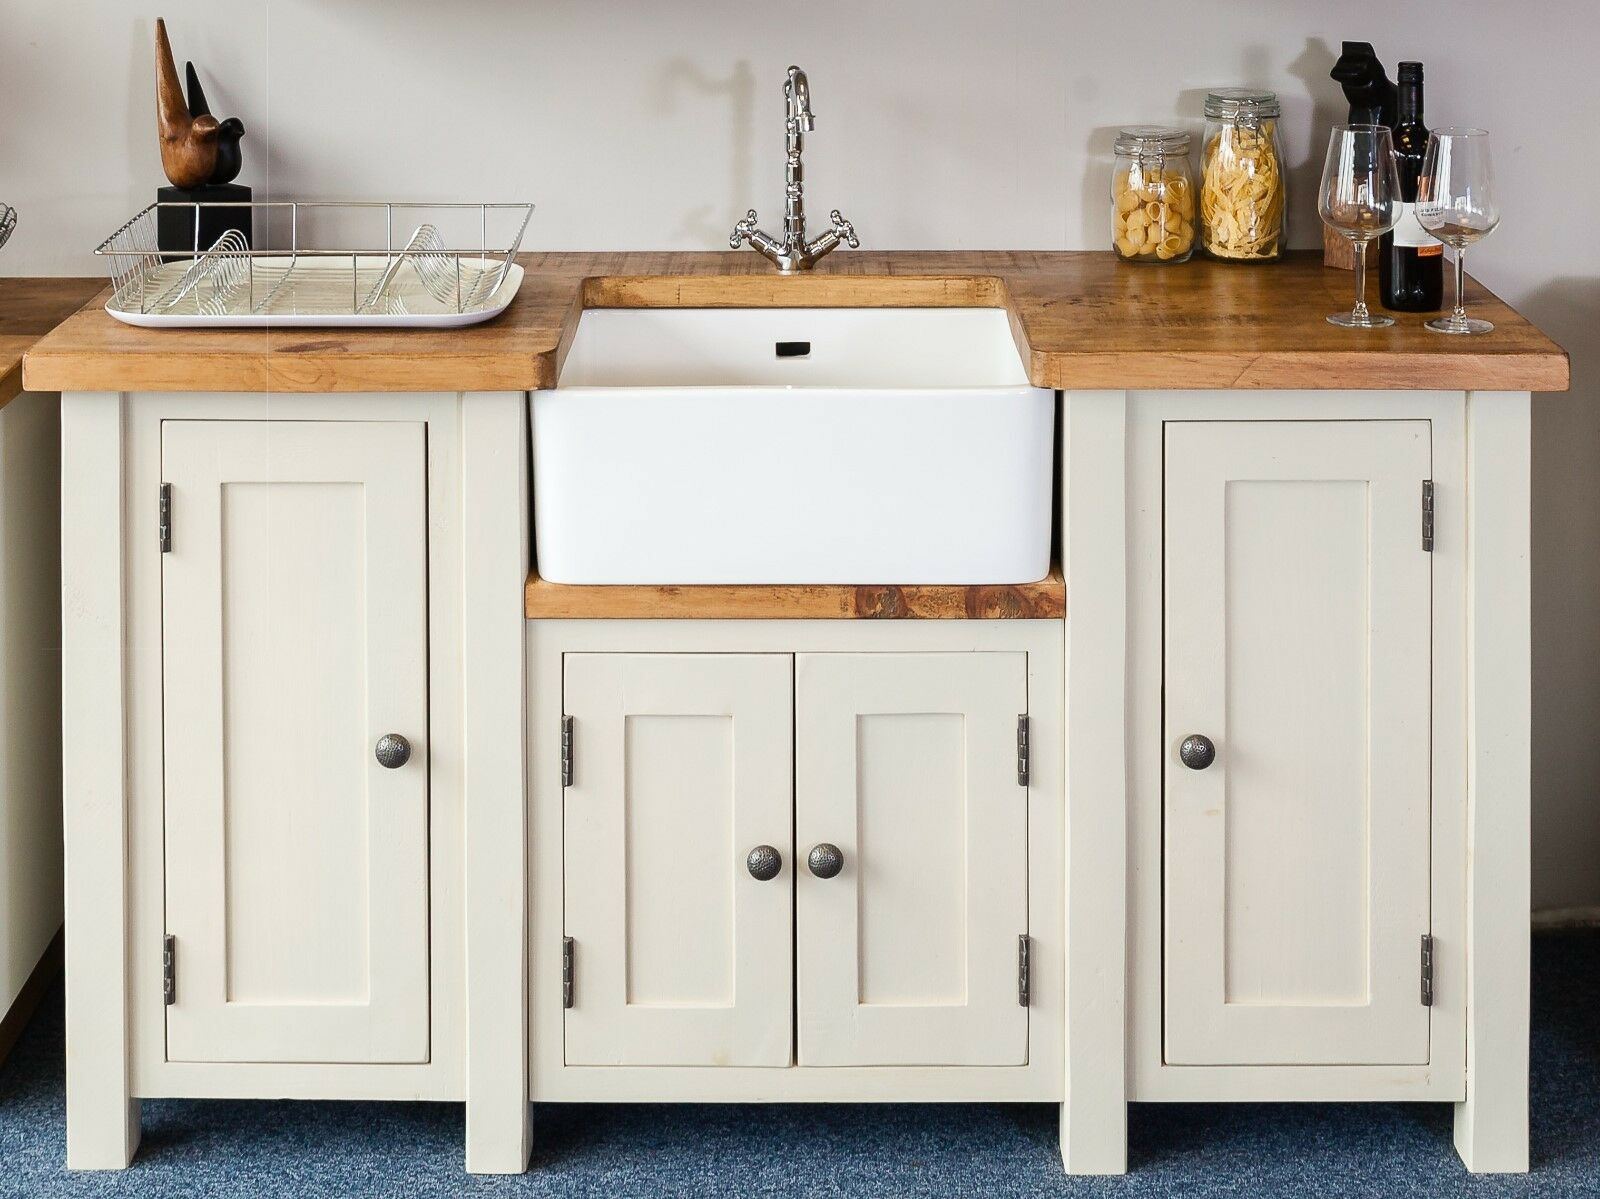 handmade kitchen belfast sink unit freestanding kitchen. Black Bedroom Furniture Sets. Home Design Ideas